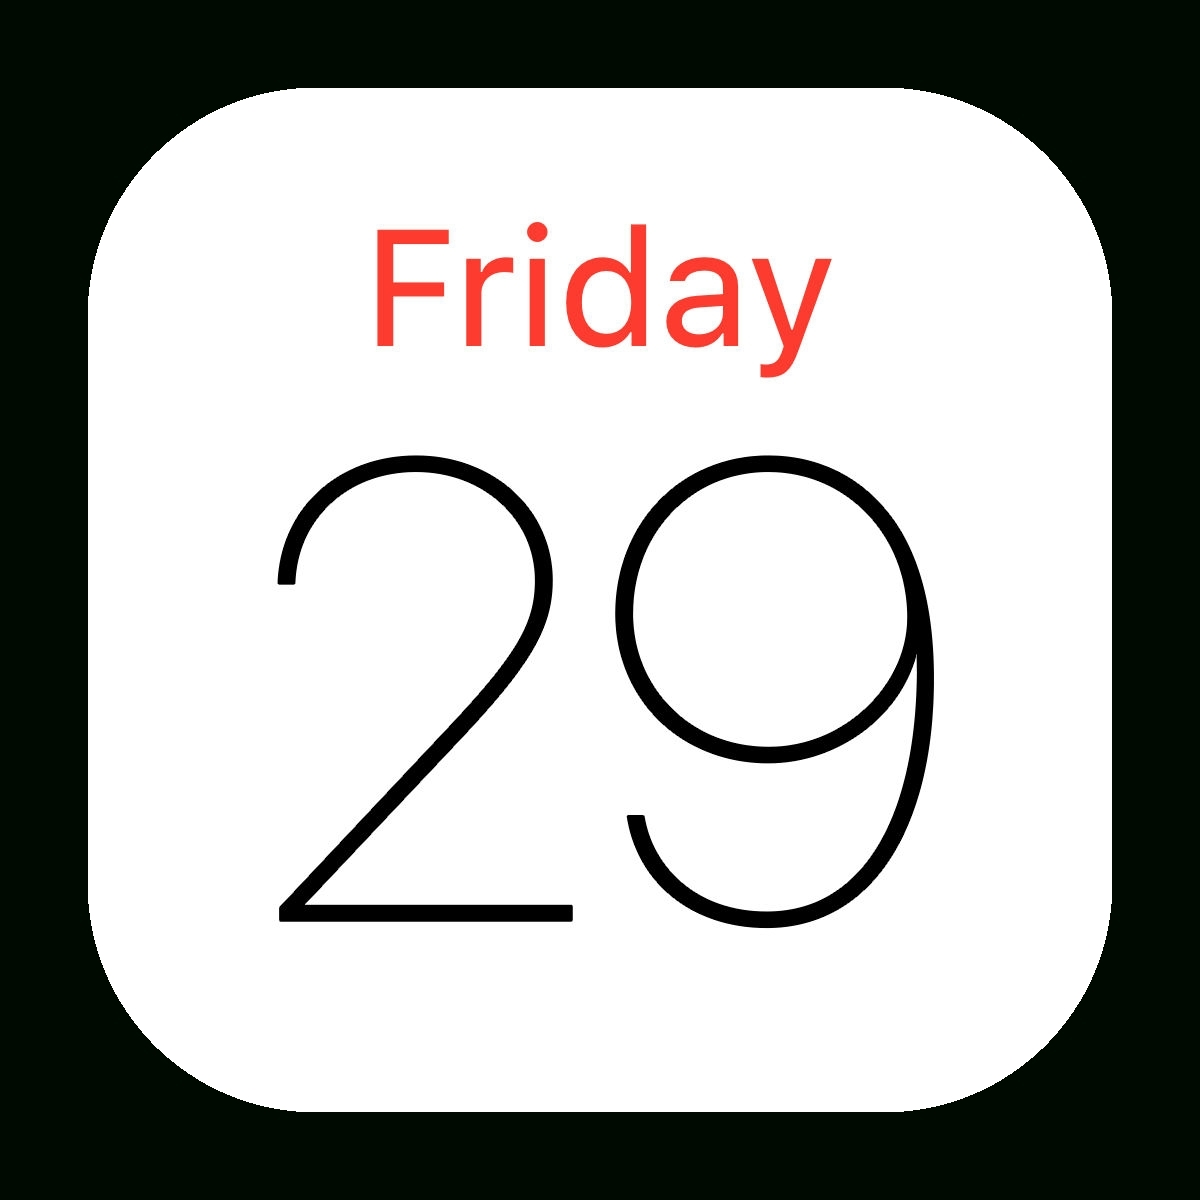 Calendar Icon Gone From Iphone • Printable Blank Calendar Template_Calendar Icon Gone From Iphone